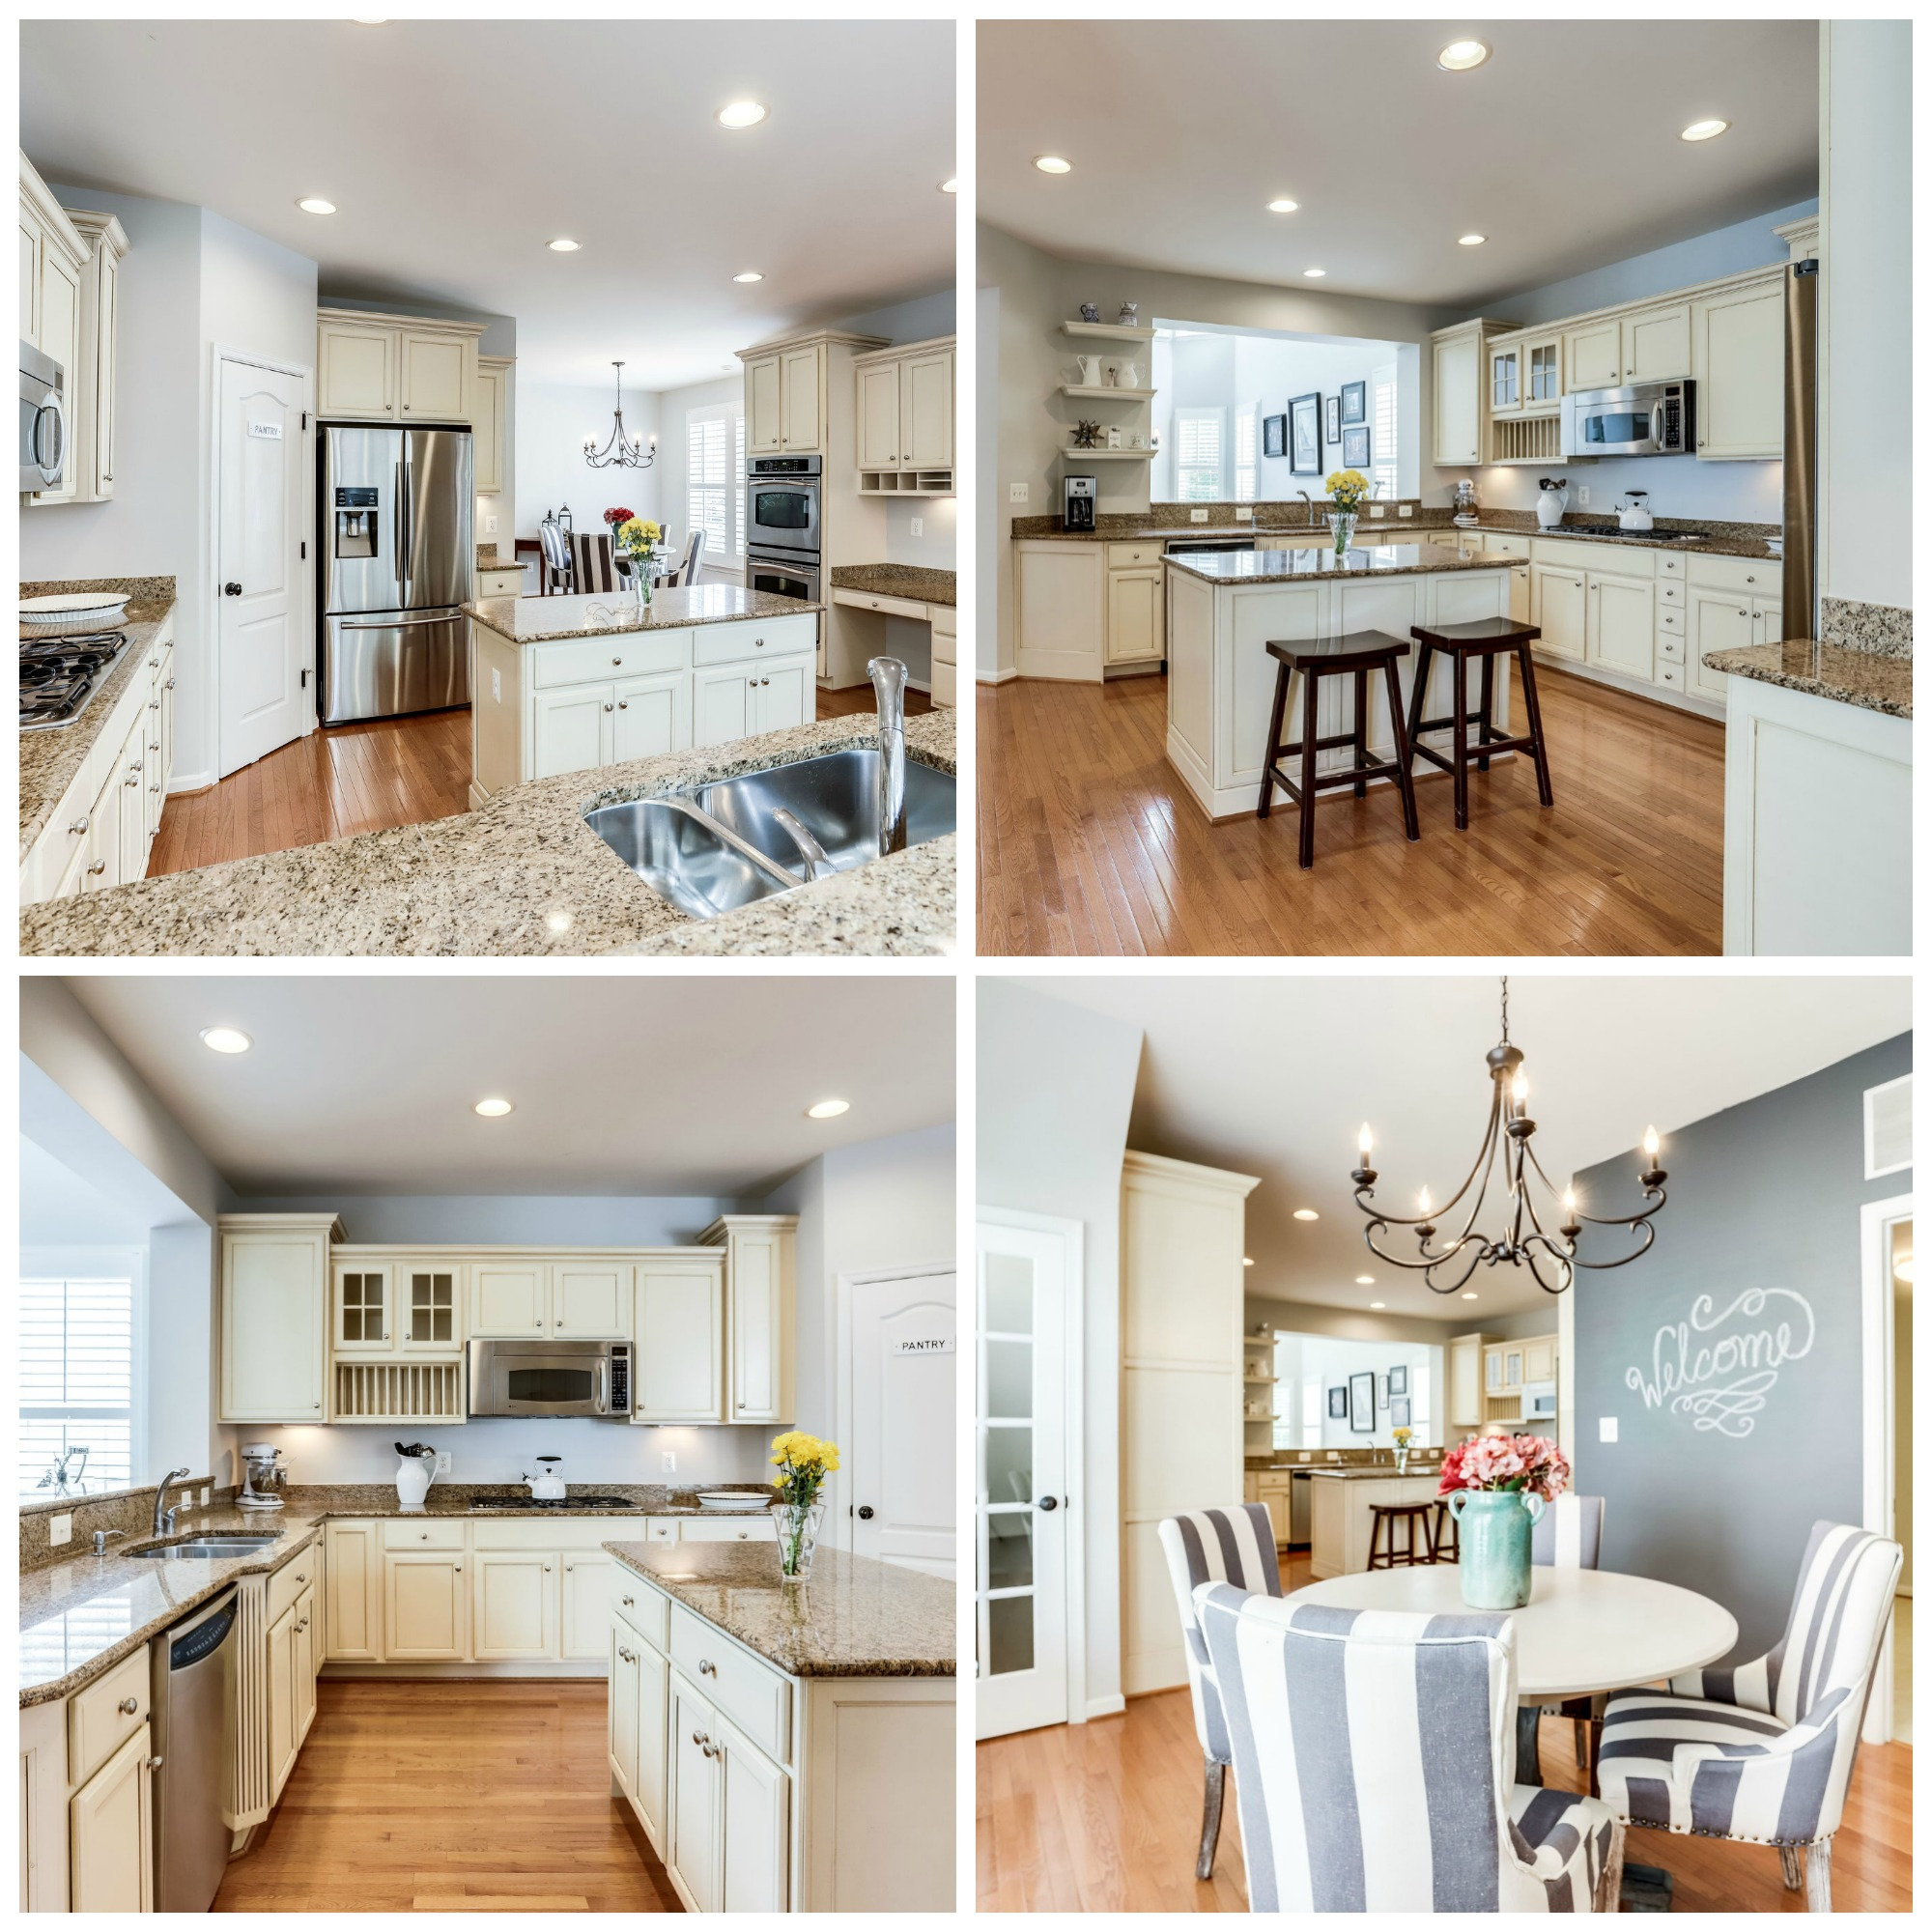 42914 Park Brooke Ct, Broadlands-Kitchen and Breakfast Room